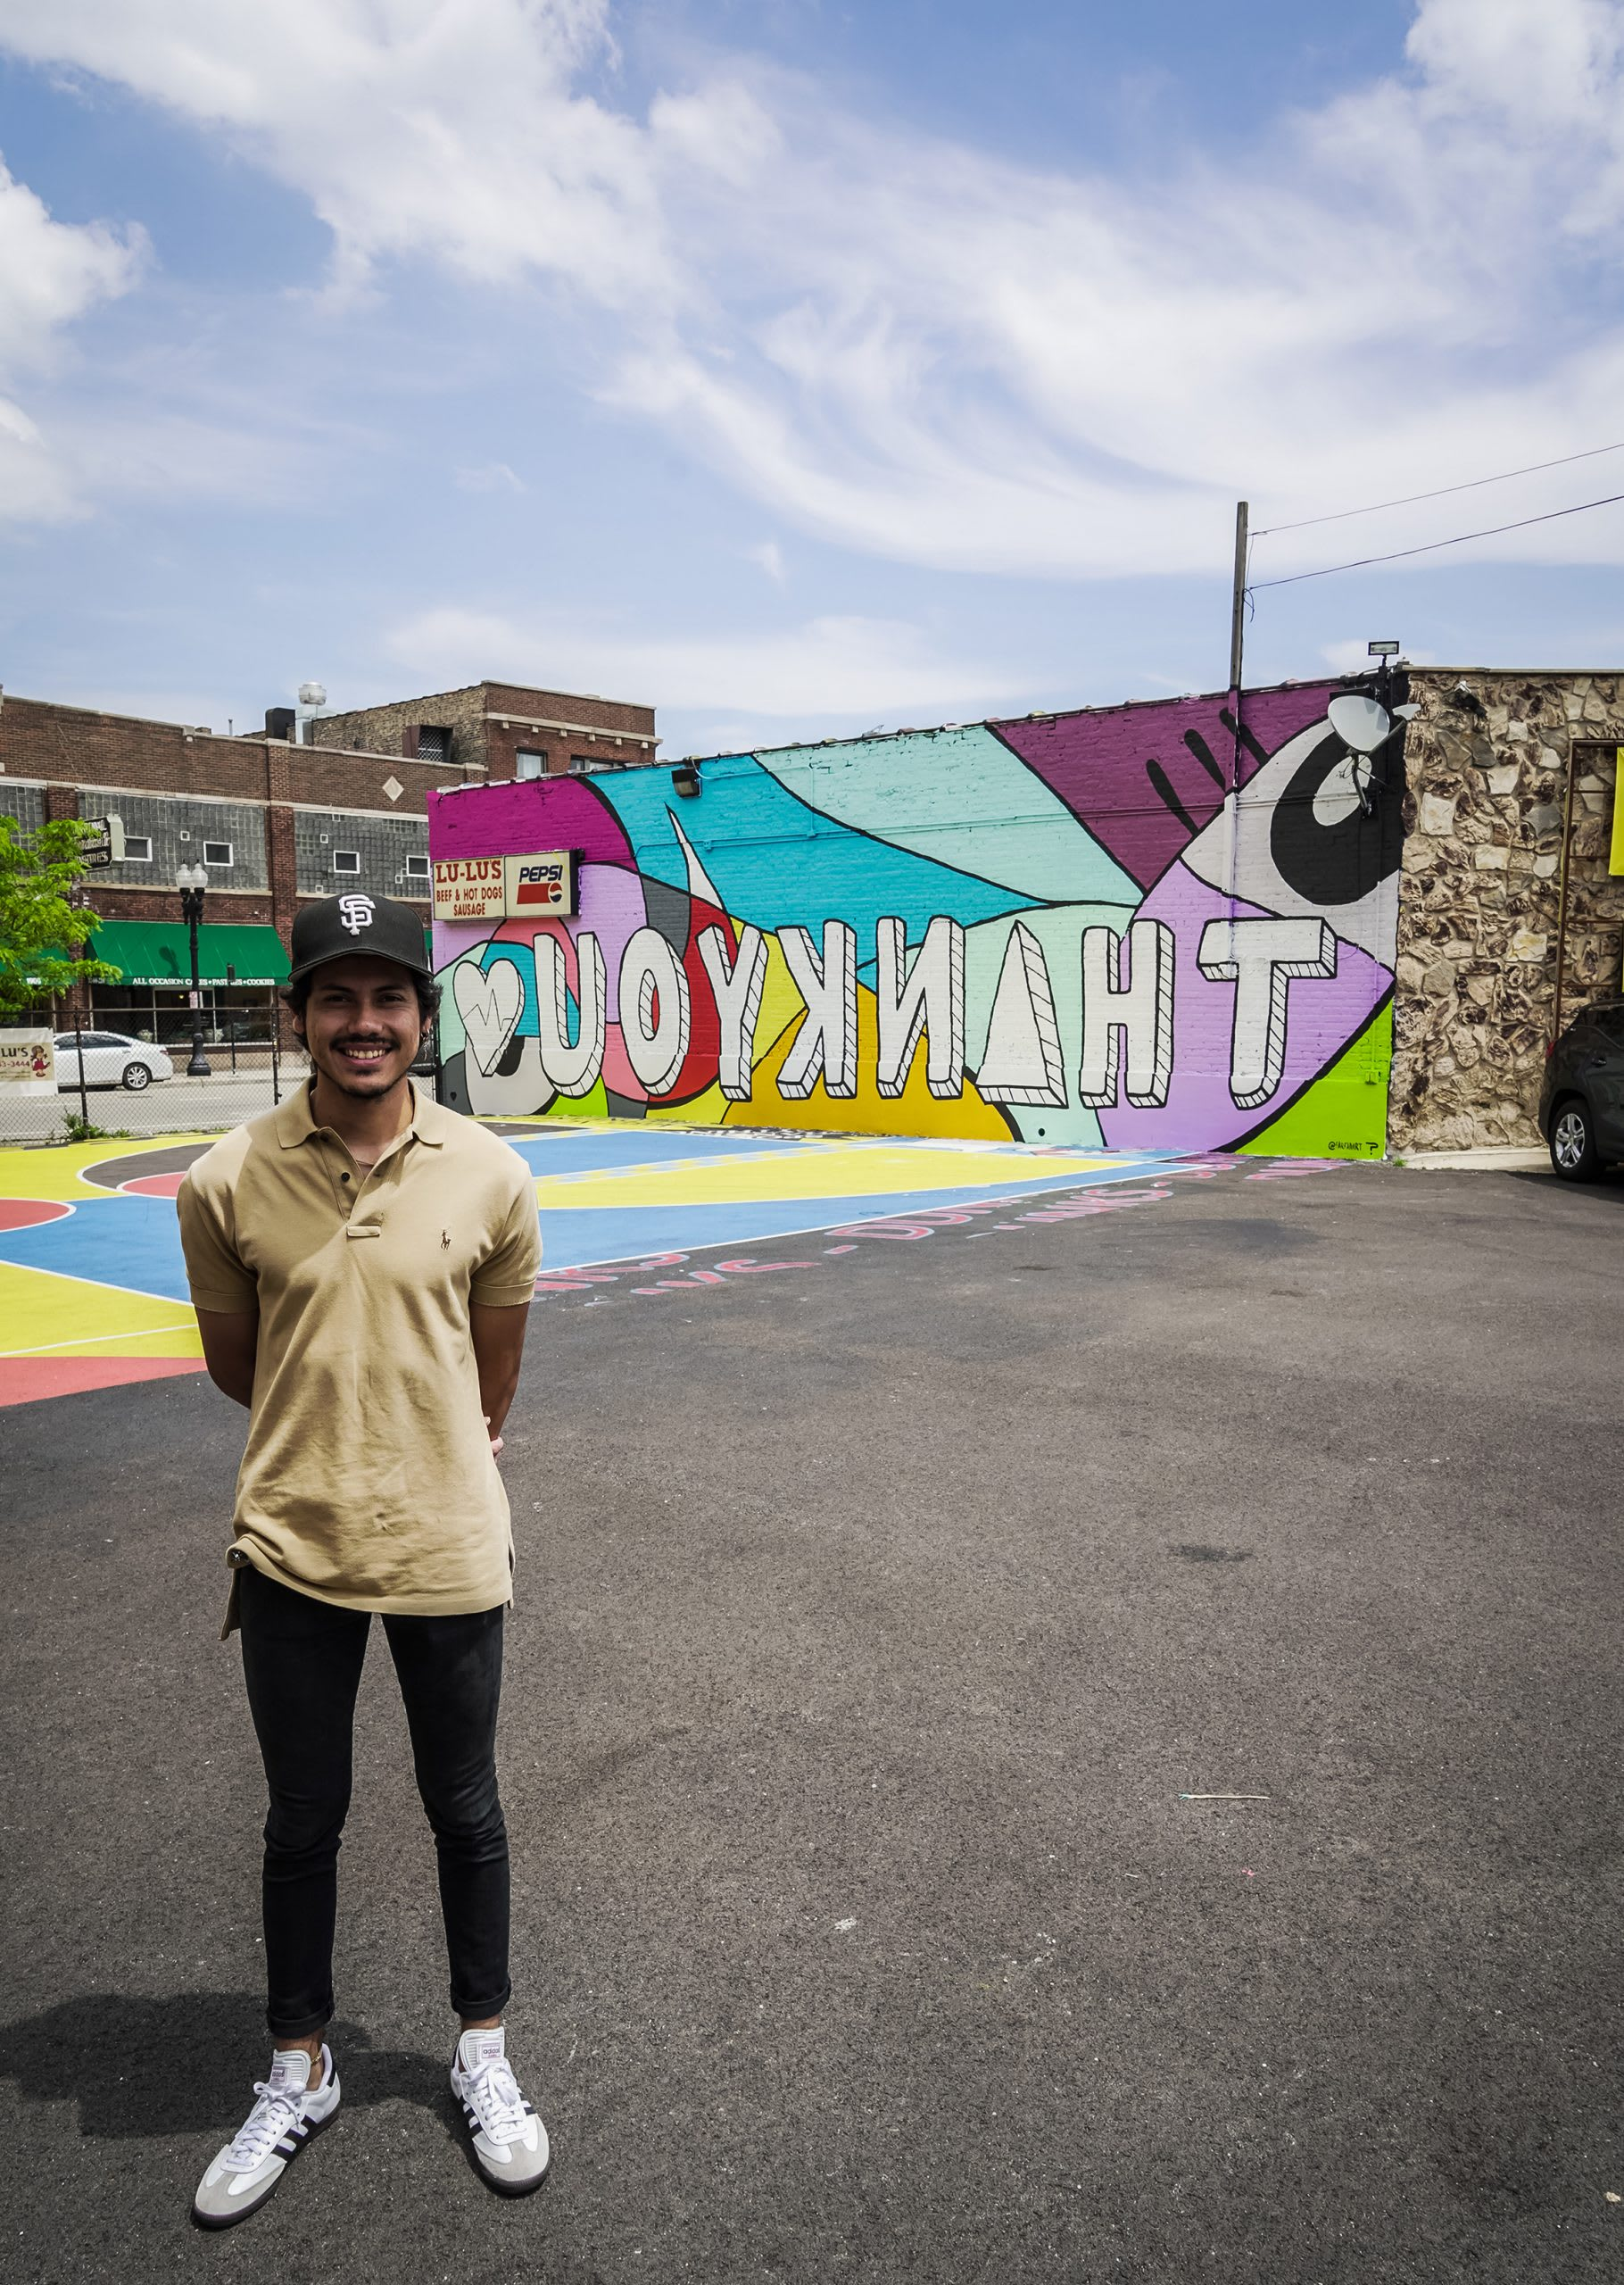 Murals For Medical Relief Mural in Chicago by Sergio FarfanI